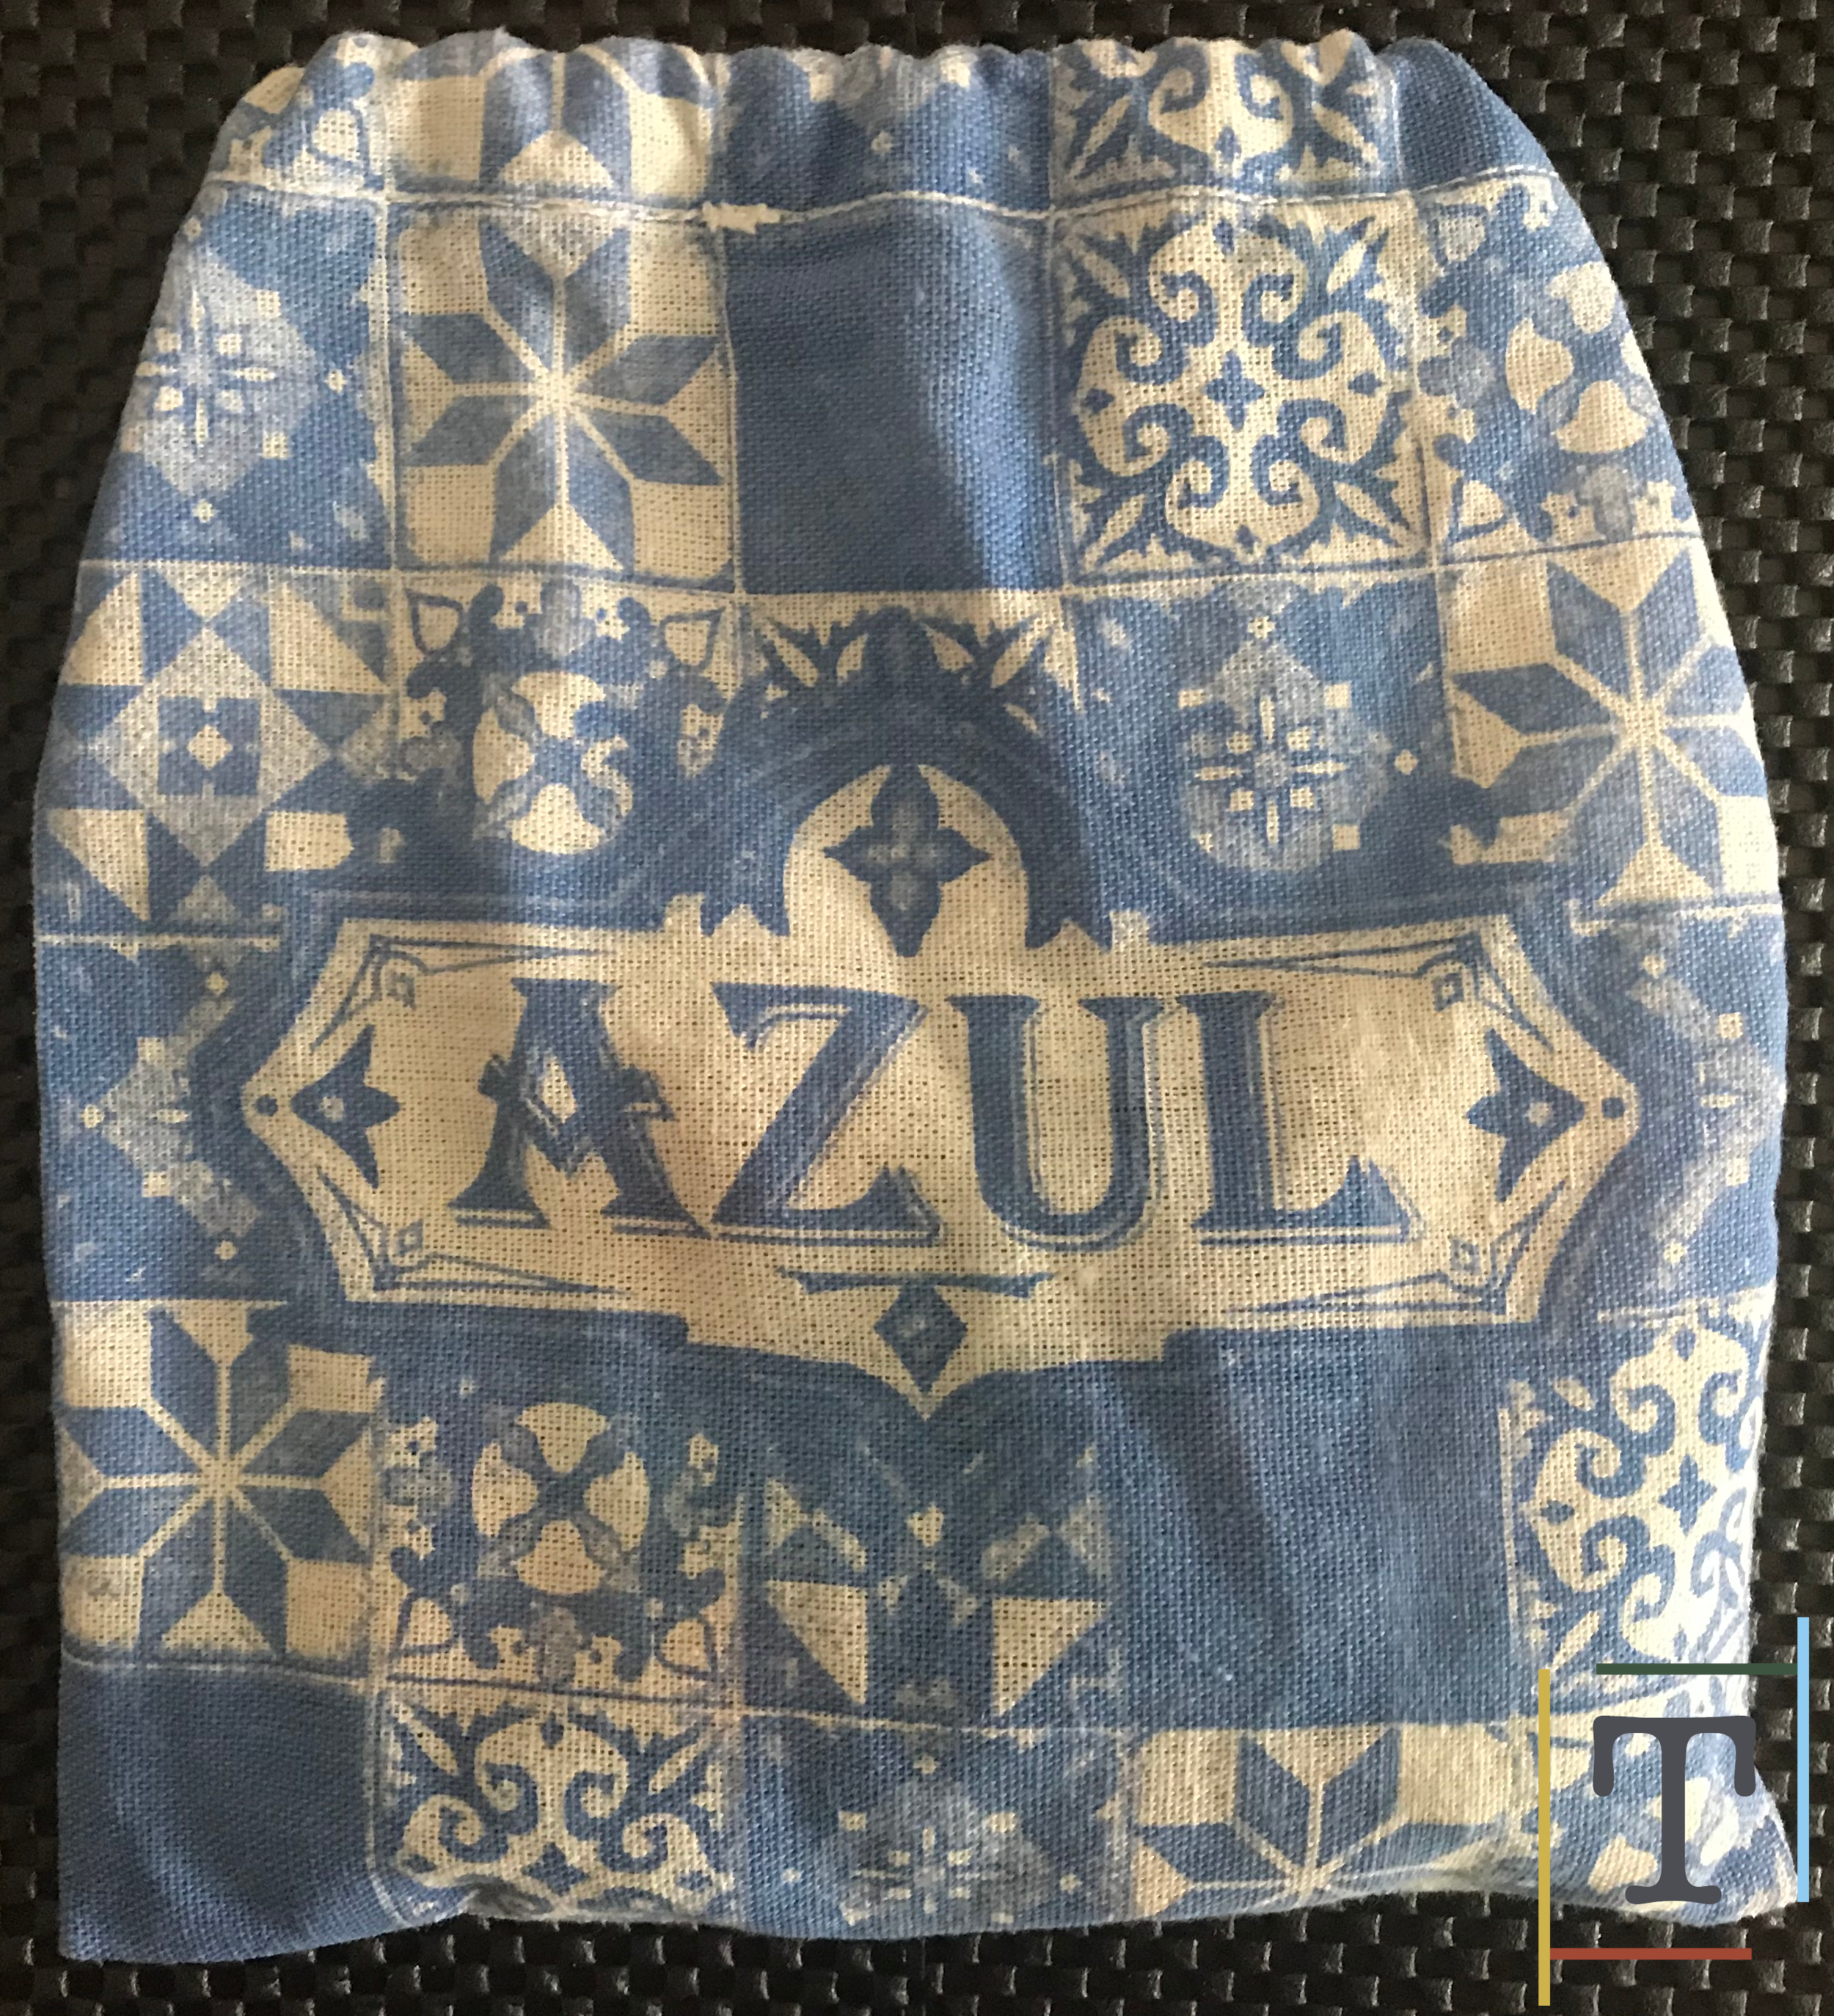 Even Azul's bag is top quality